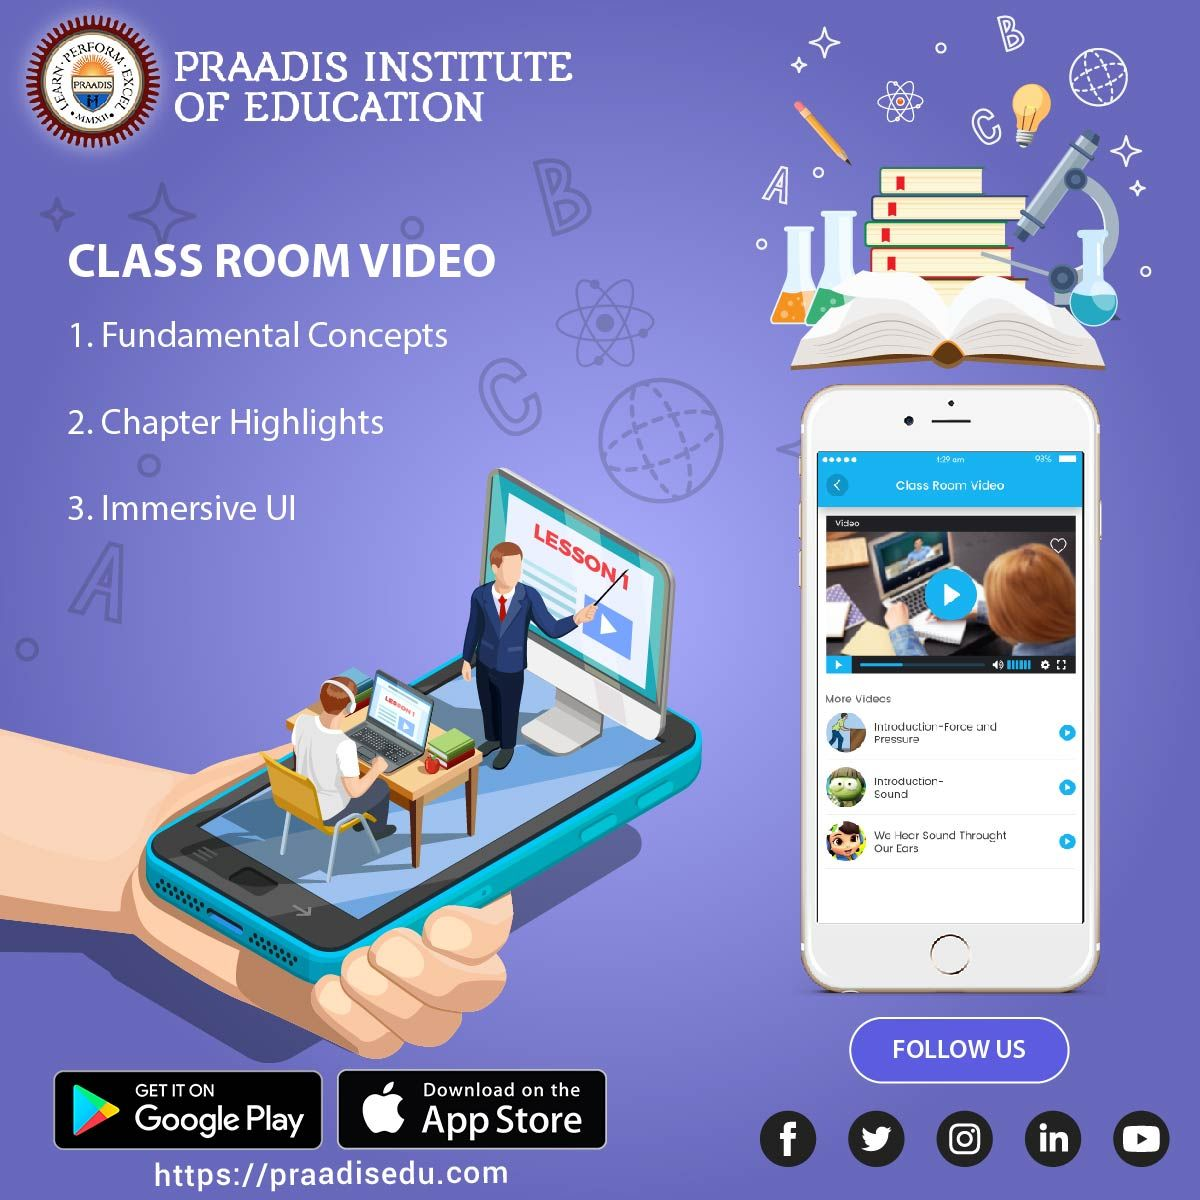 Learn Smart With New Improved Classroom Videos Of Praadieducation